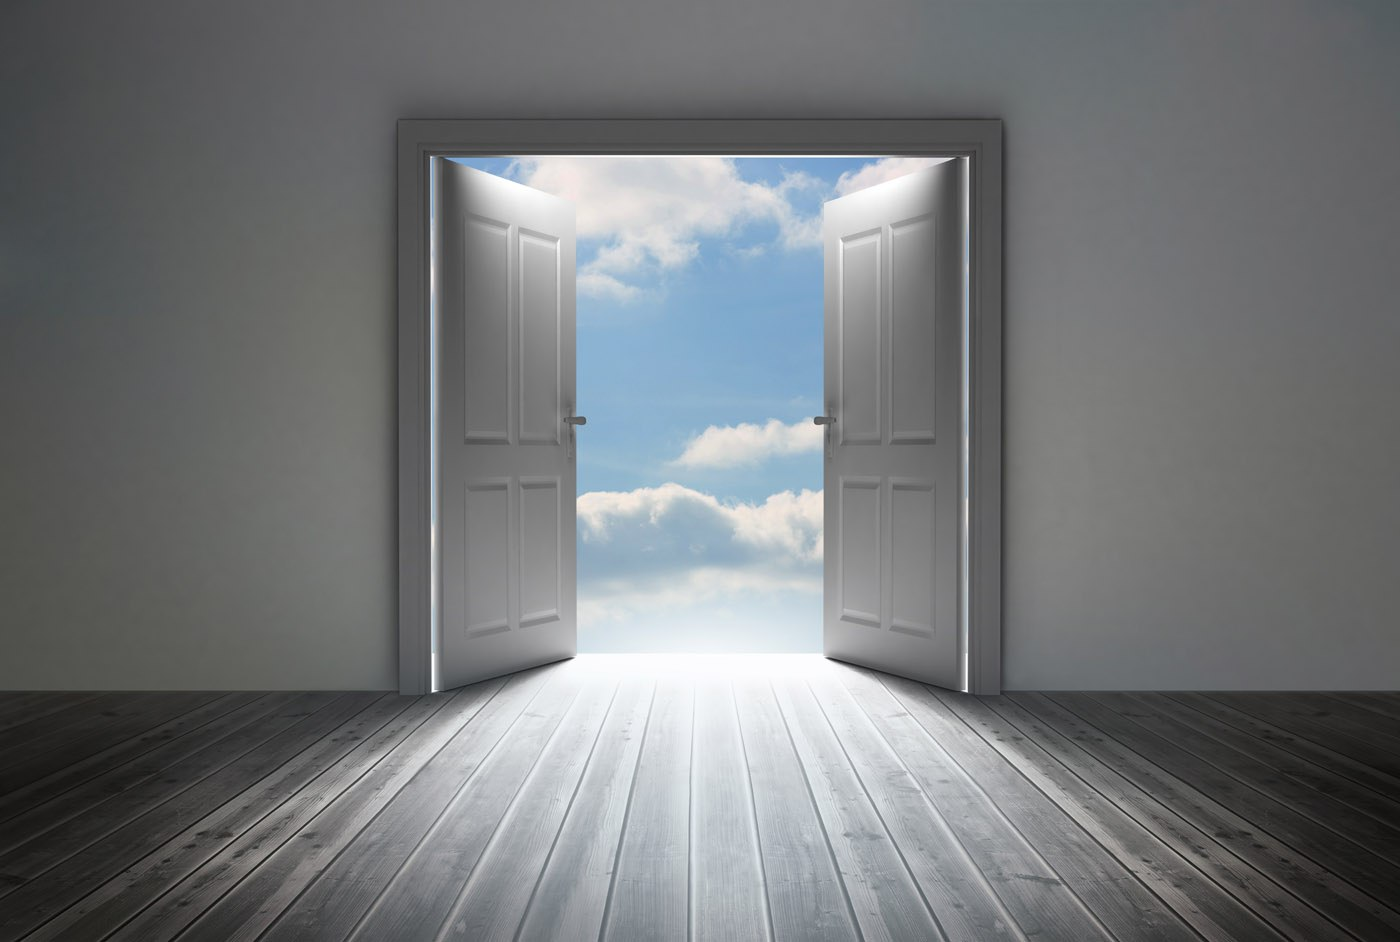 cloud_doorway